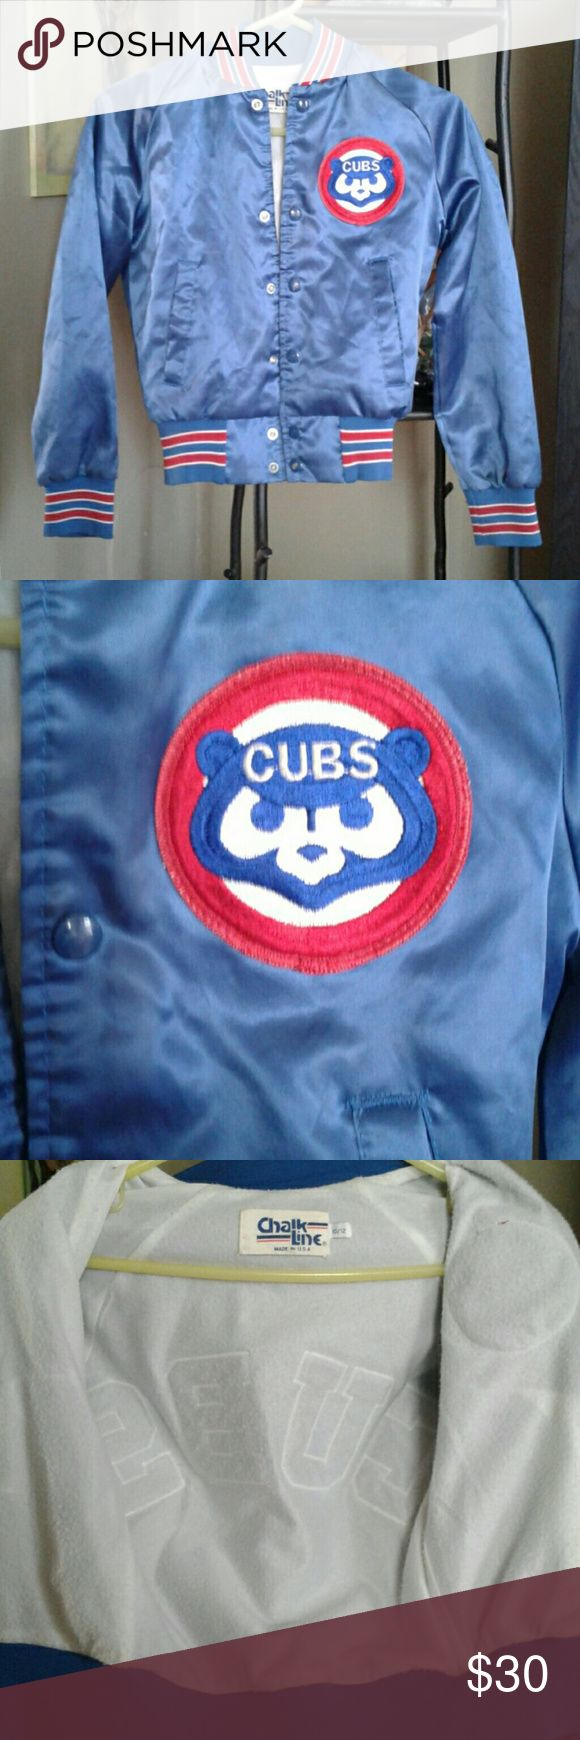 Vintage cubs jacket Says size Vintage cubs jacket 10/12 but runs small. In excellent condition with limited wear on buttons. No rips, holes, tears, or stains. Chicago Cubs Jackets & Coats